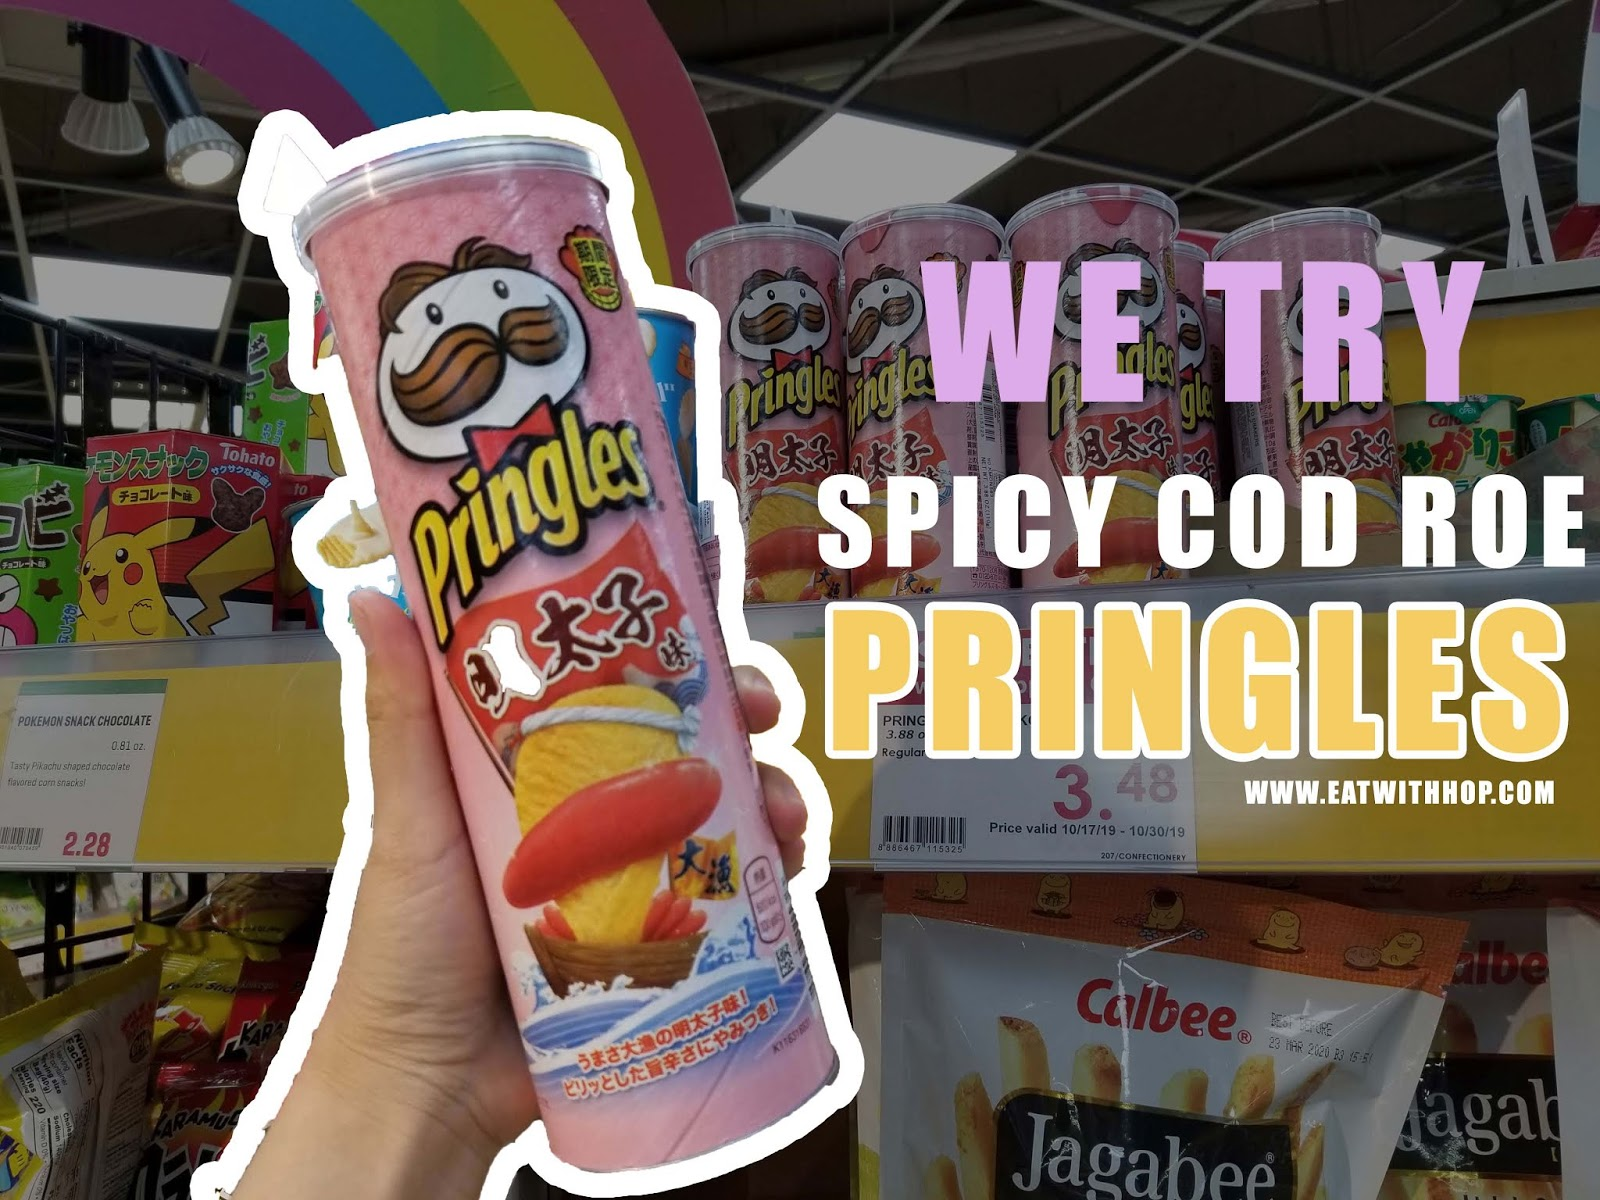 Spicy Cod Roe Flavored Pringles!?